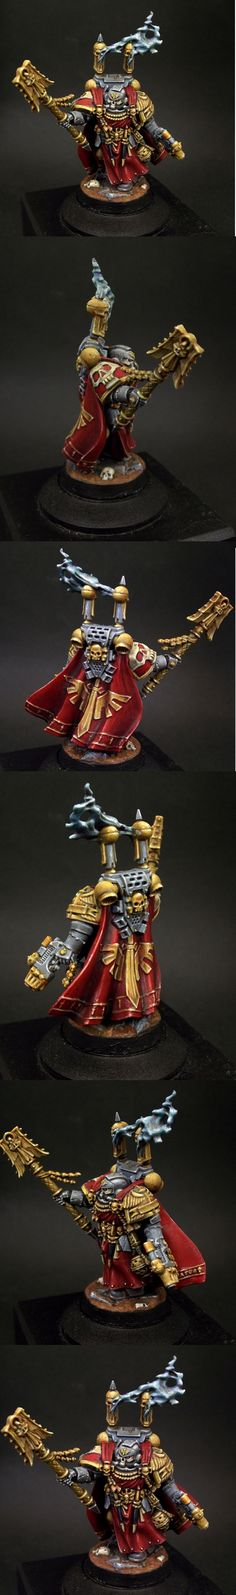 hapoticaire space marine limited series.